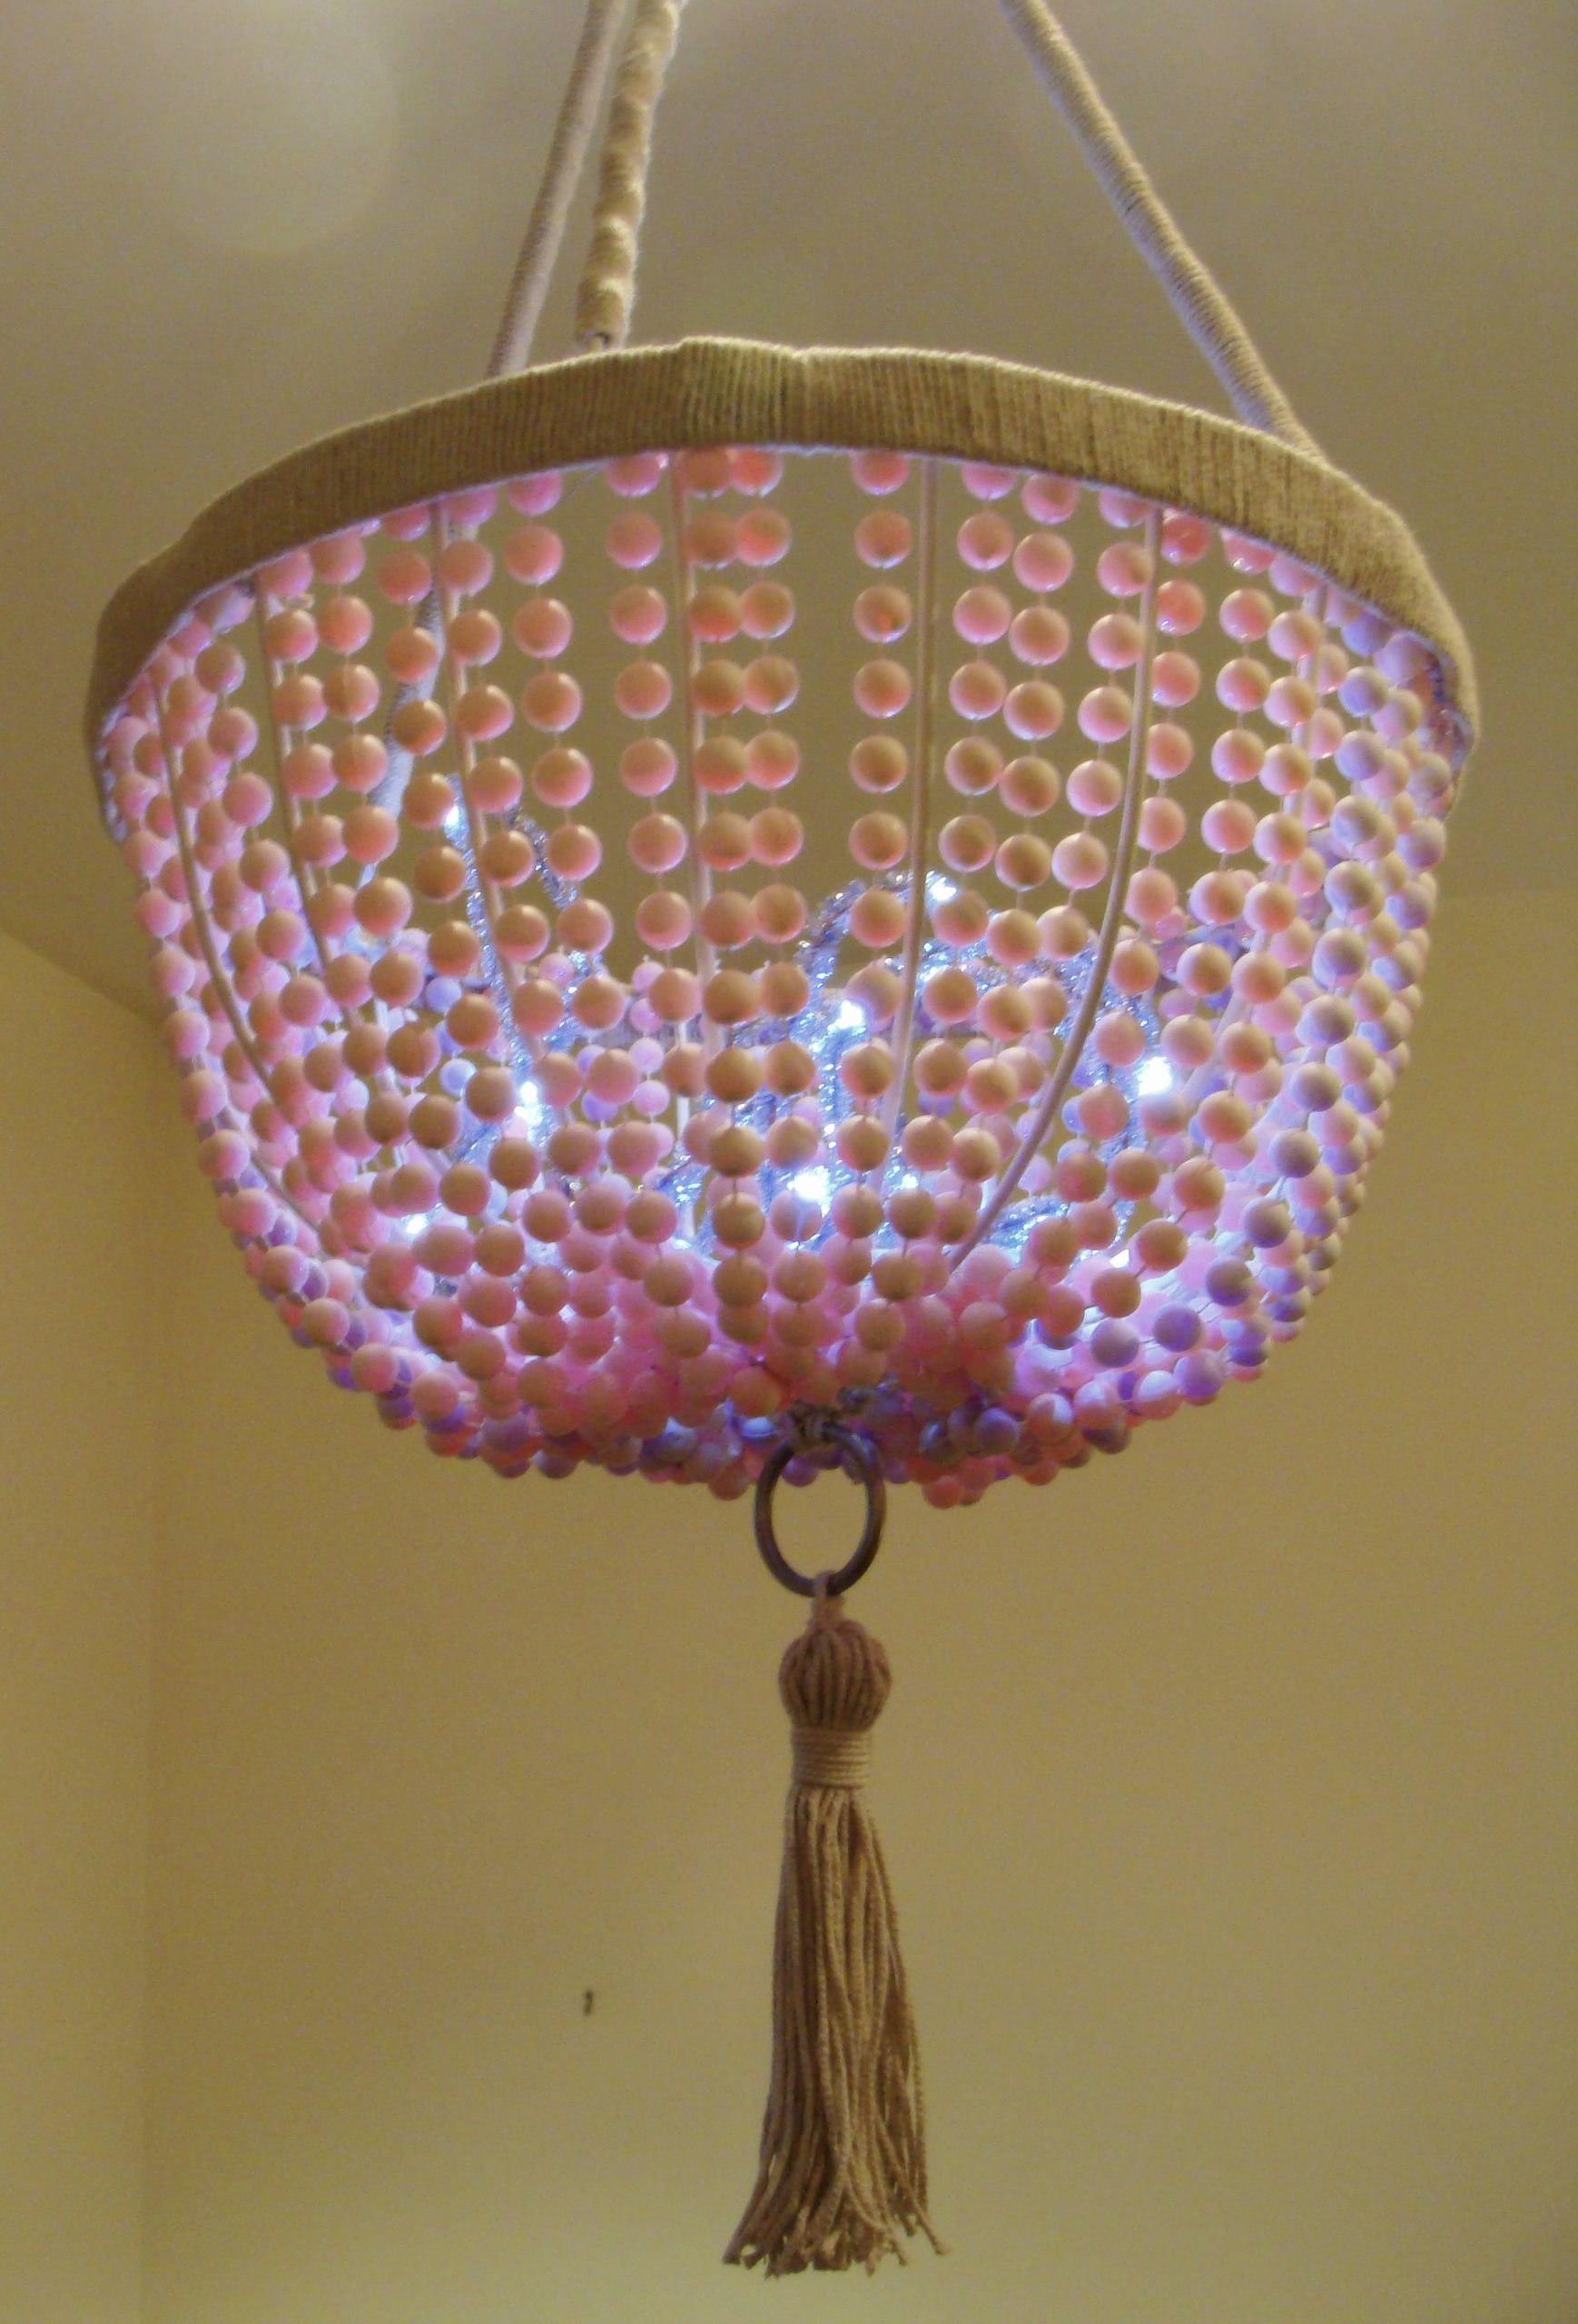 Stella Rose Chandelier - Similar to the Serena and Lily glass bead ...